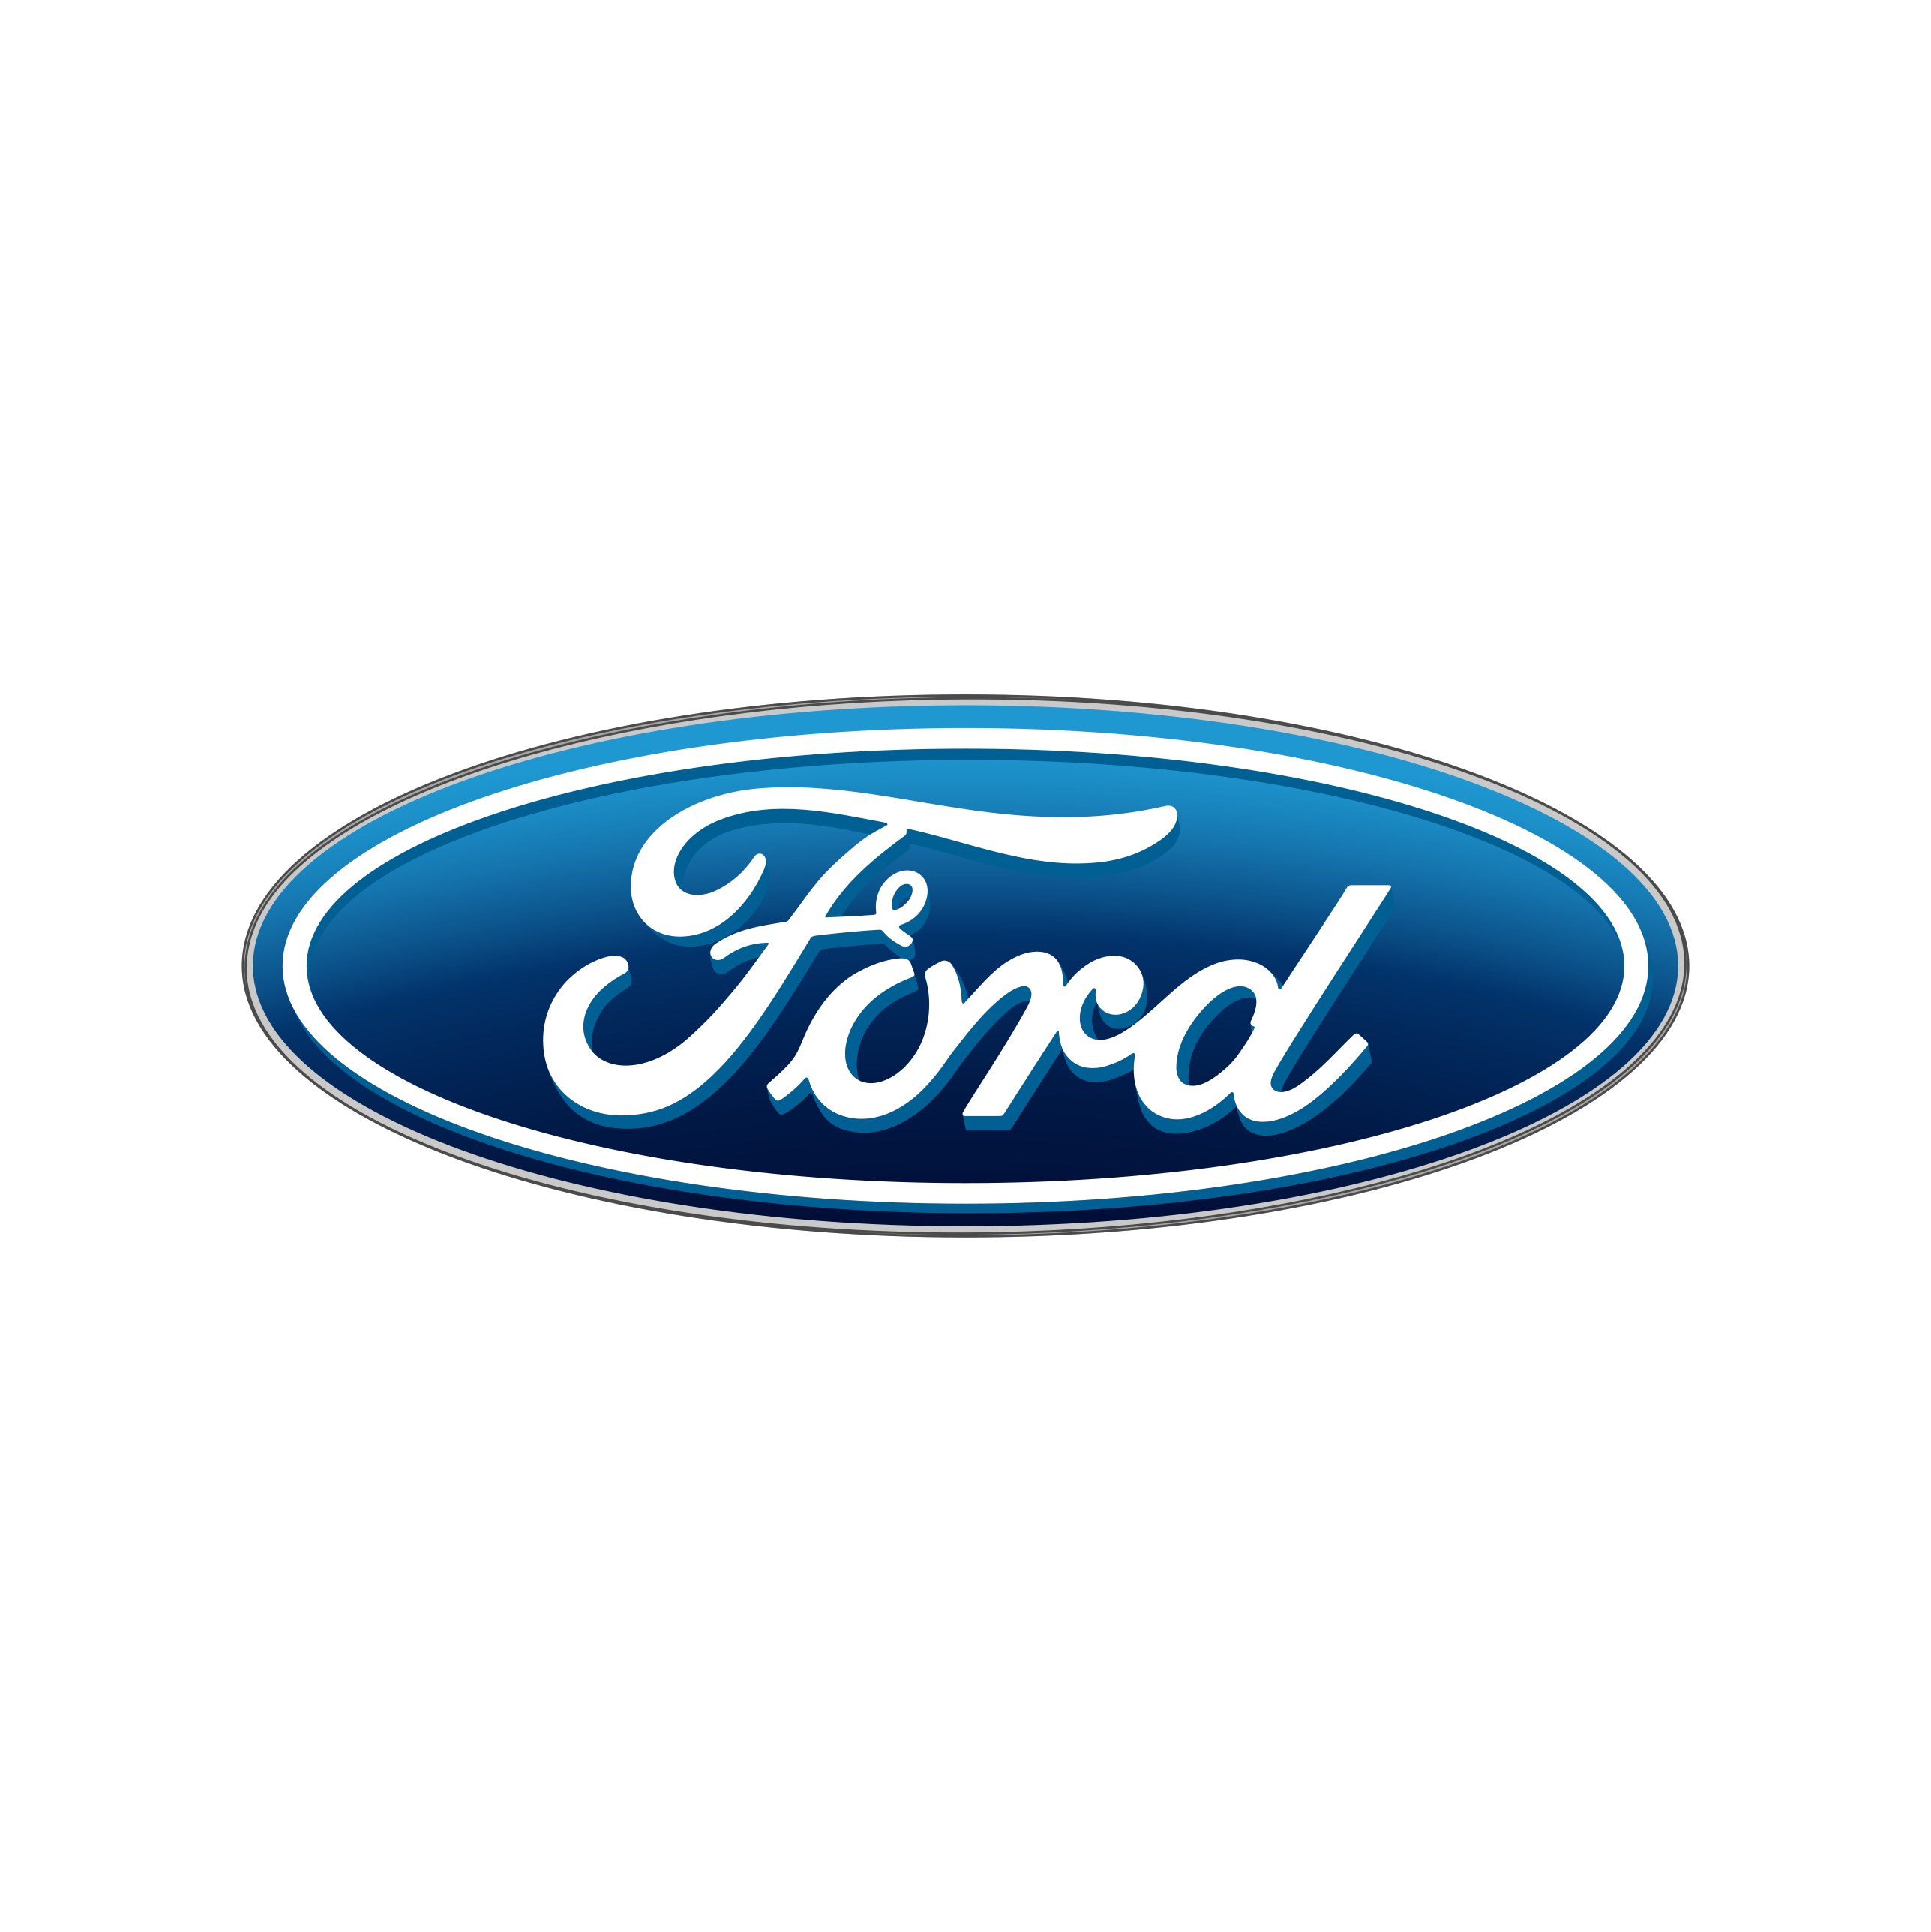 Ford Car Wallpaper: Ford & Lyft Announce Partnership To Deploy Self Driving